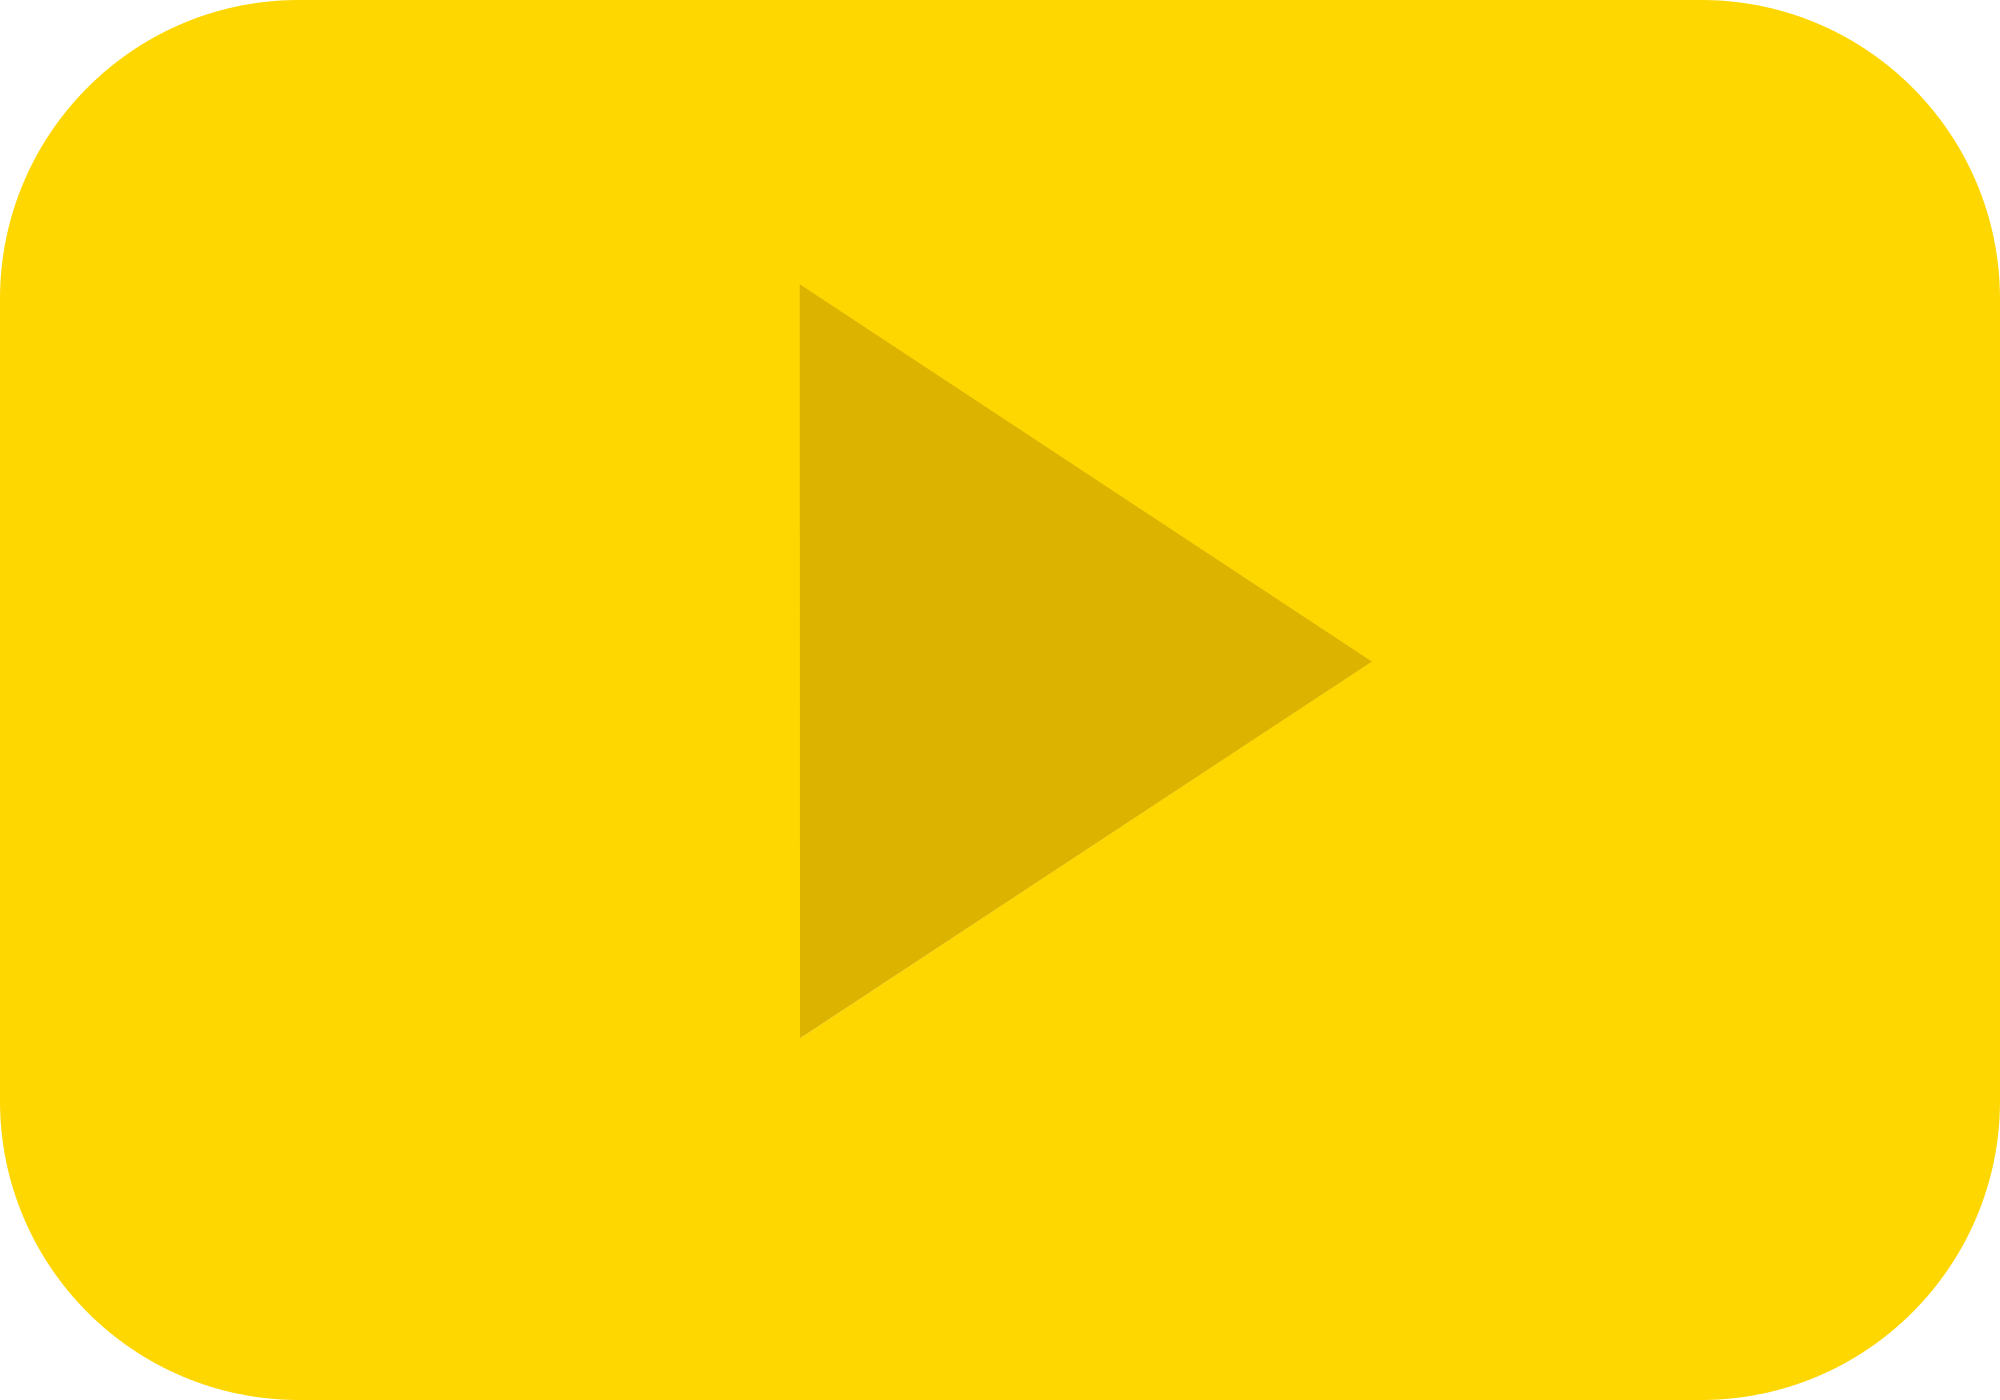 Youtube-gold-play-button.png-Youtube-gold-play-button.png-14